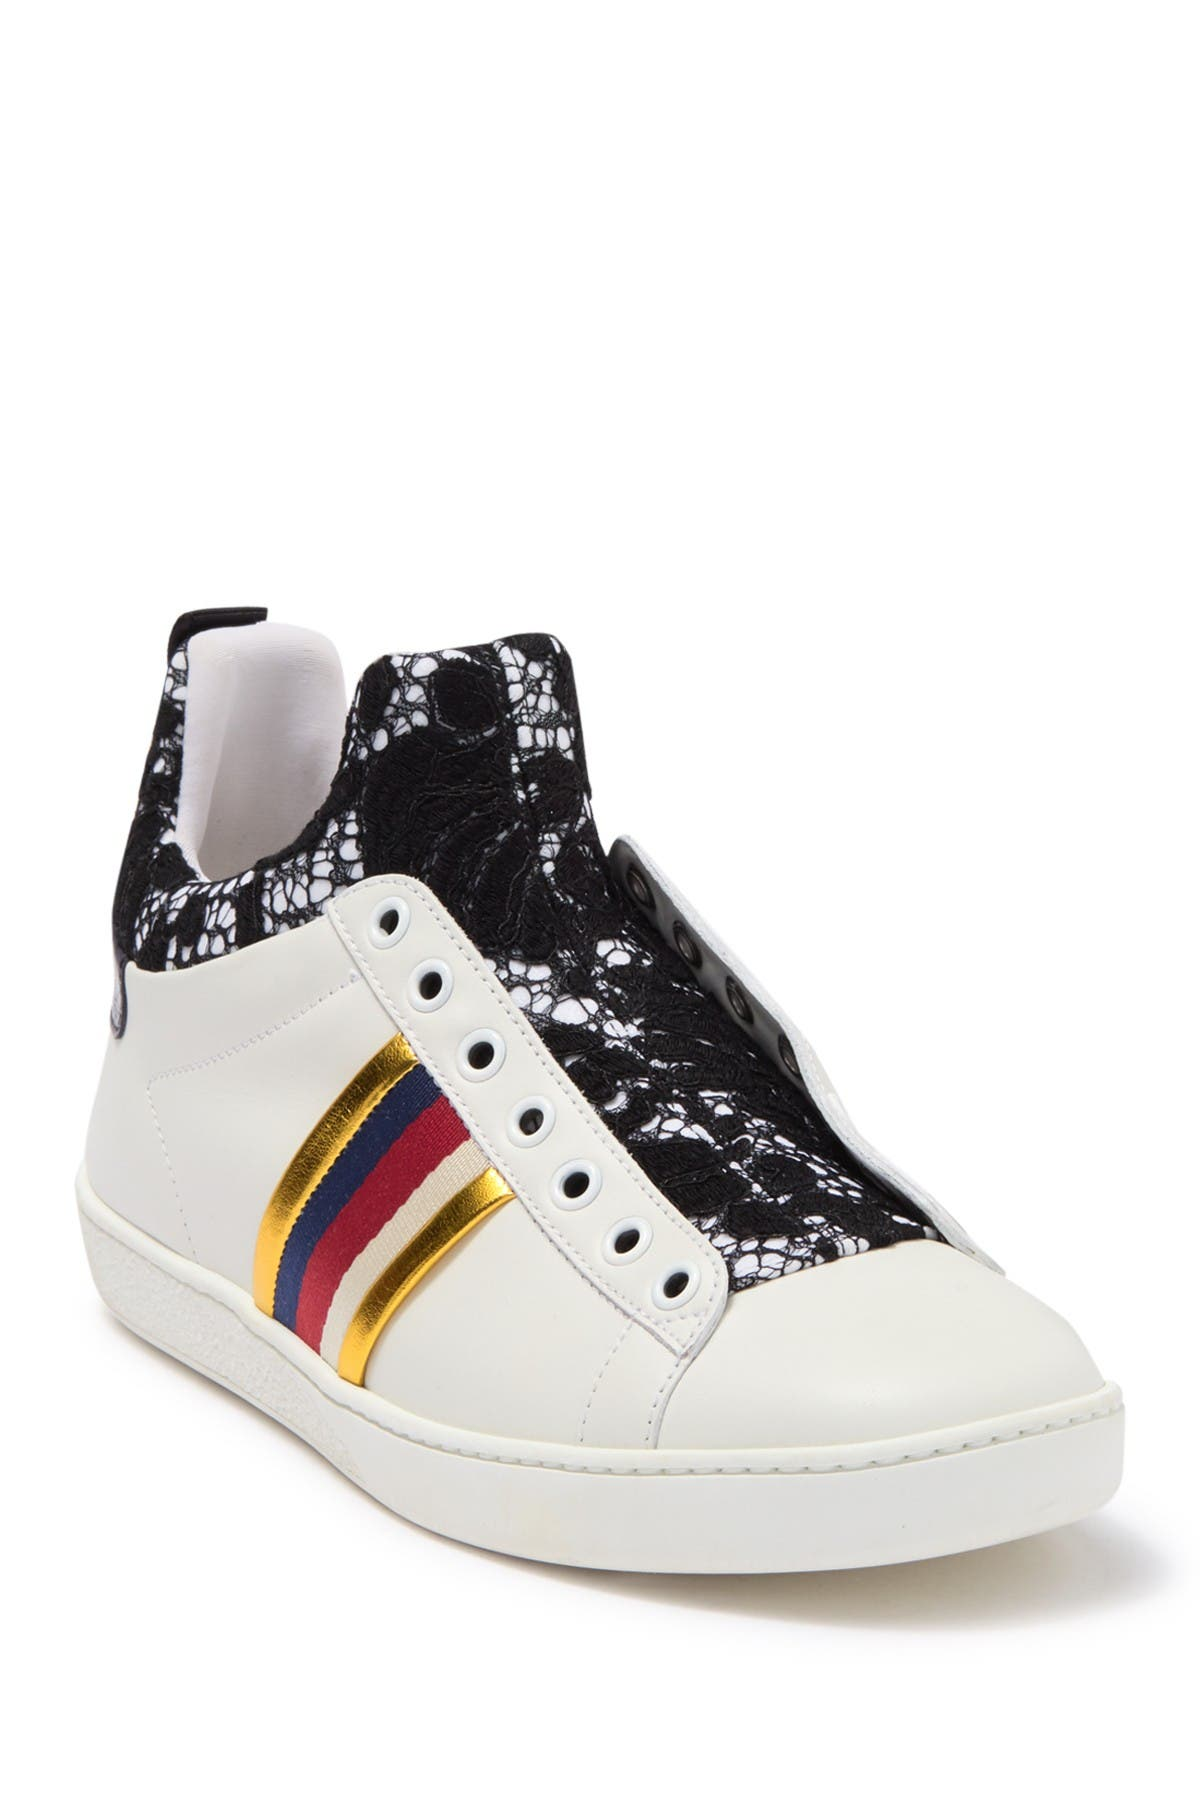 GUCCI | Ace Lace High Top Sneaker